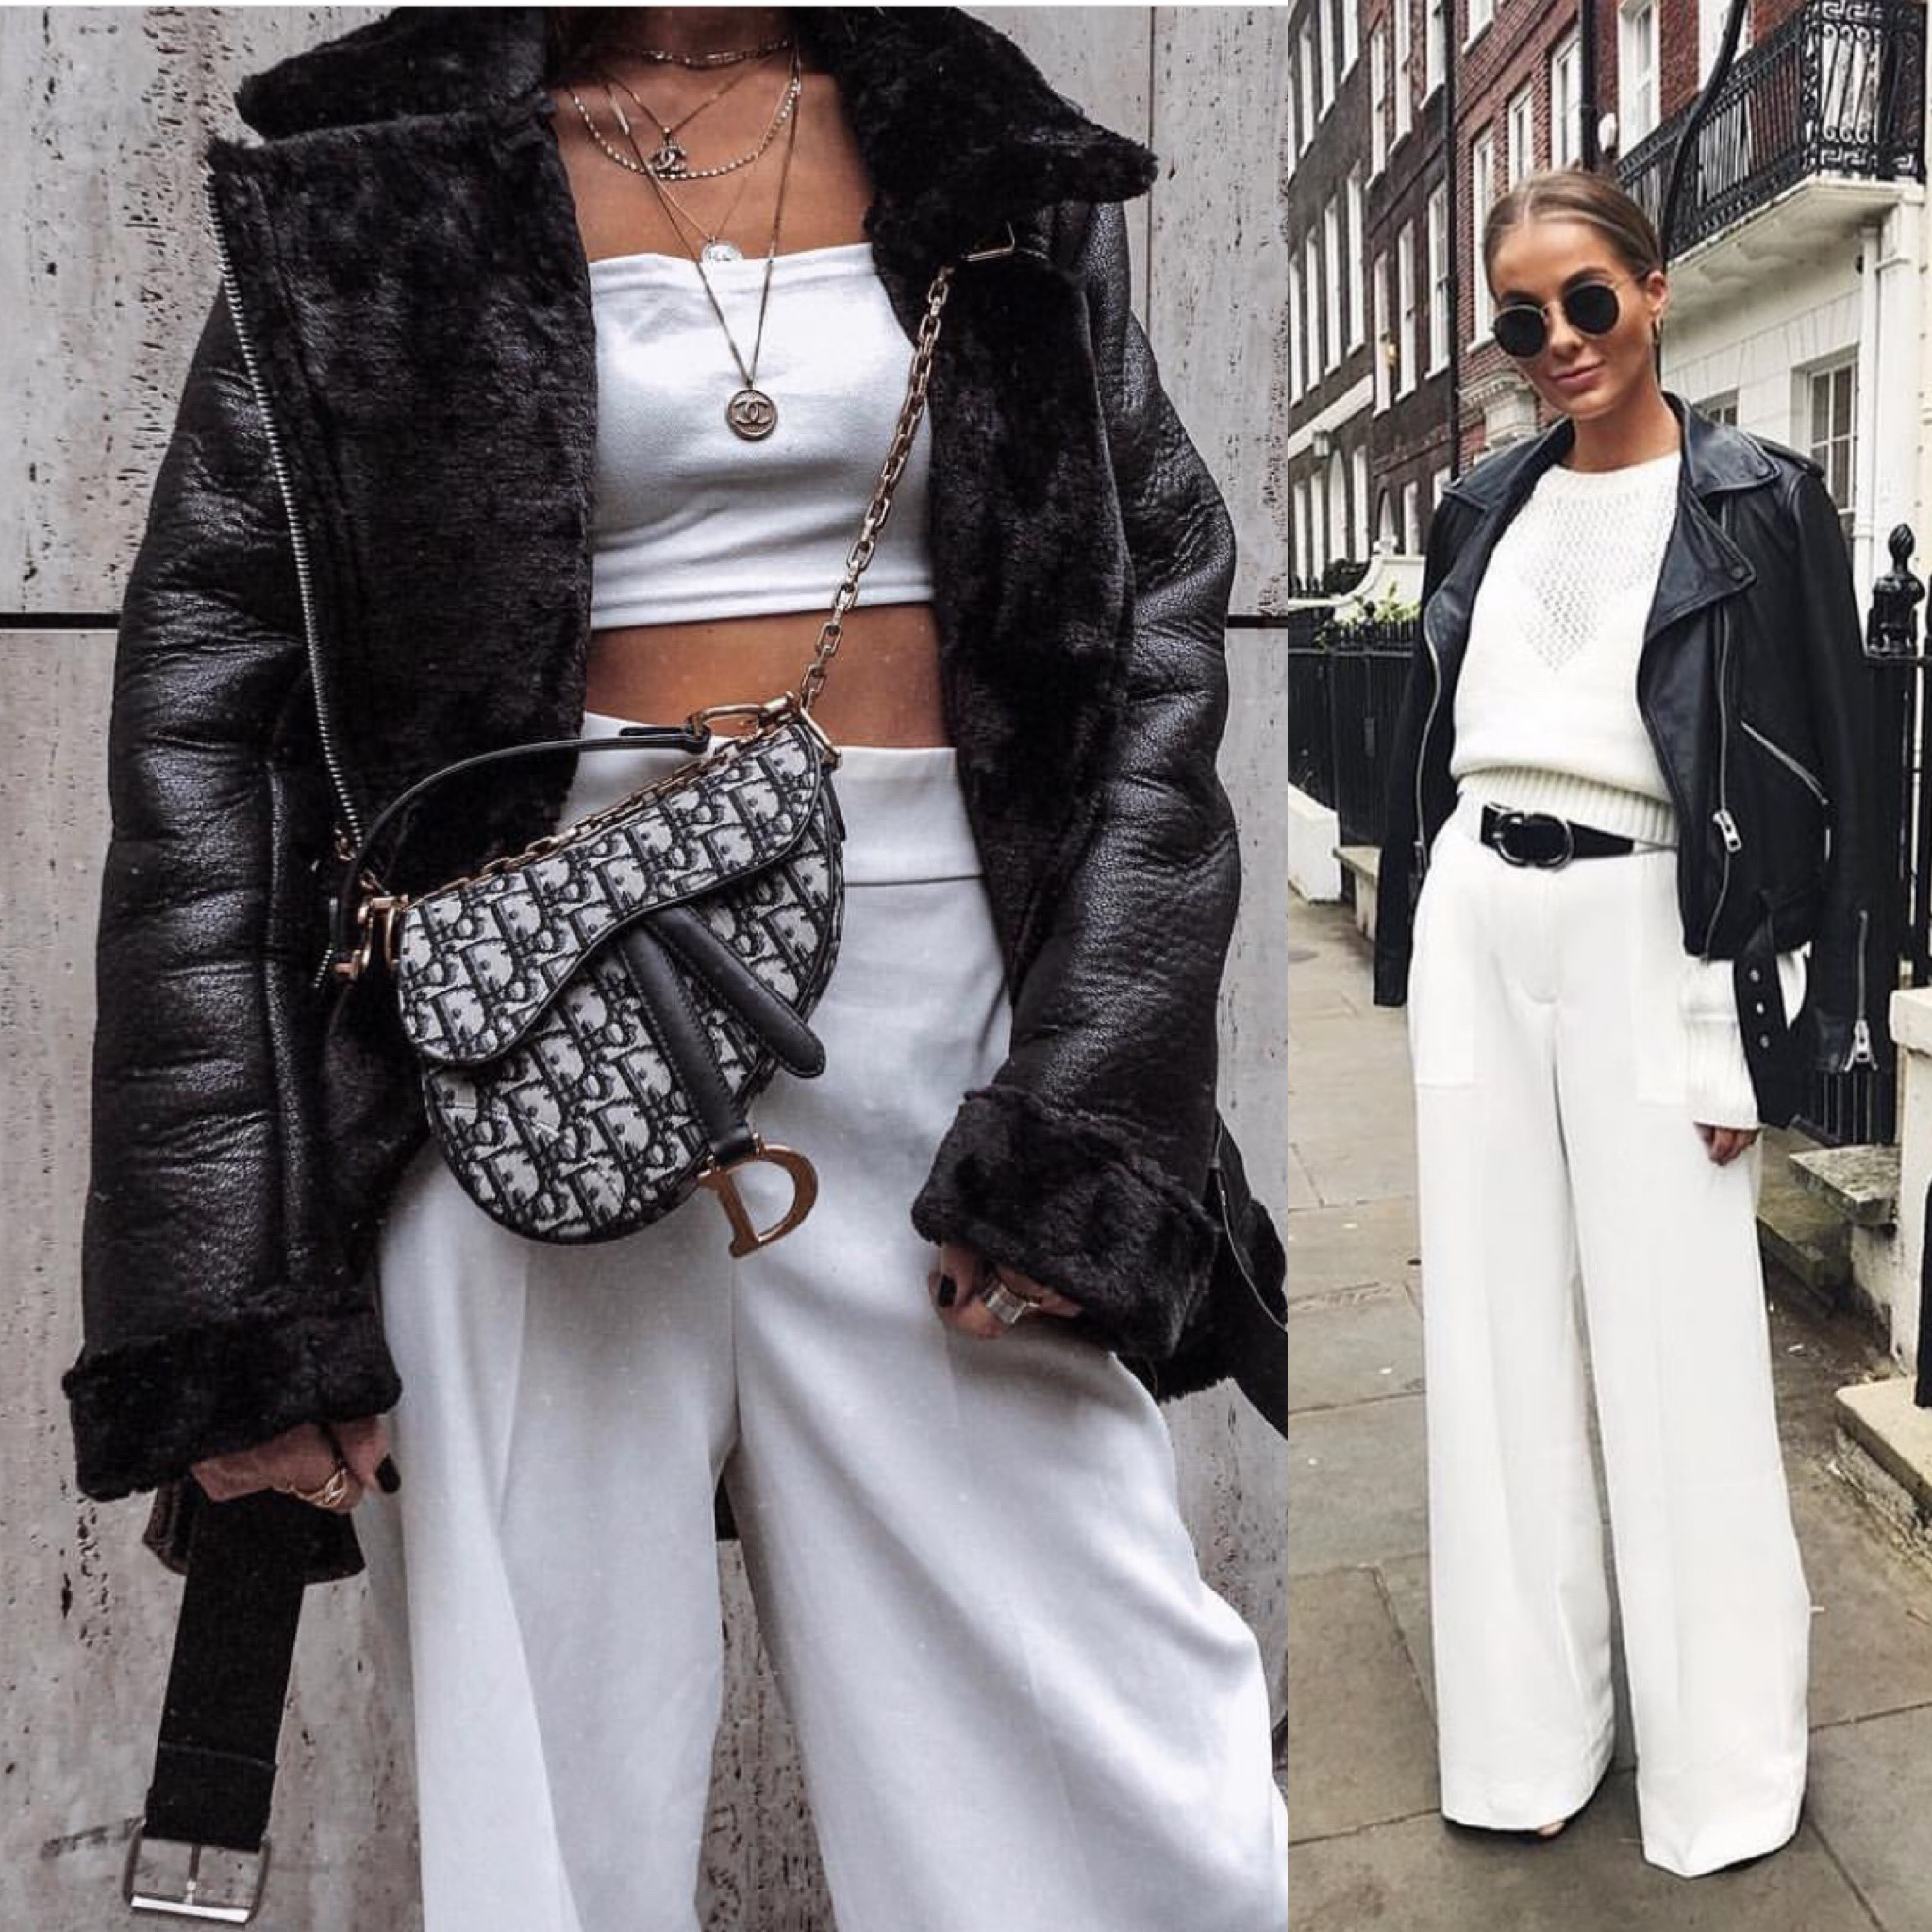 5-Looks-in-5-Minutes-Leather-7